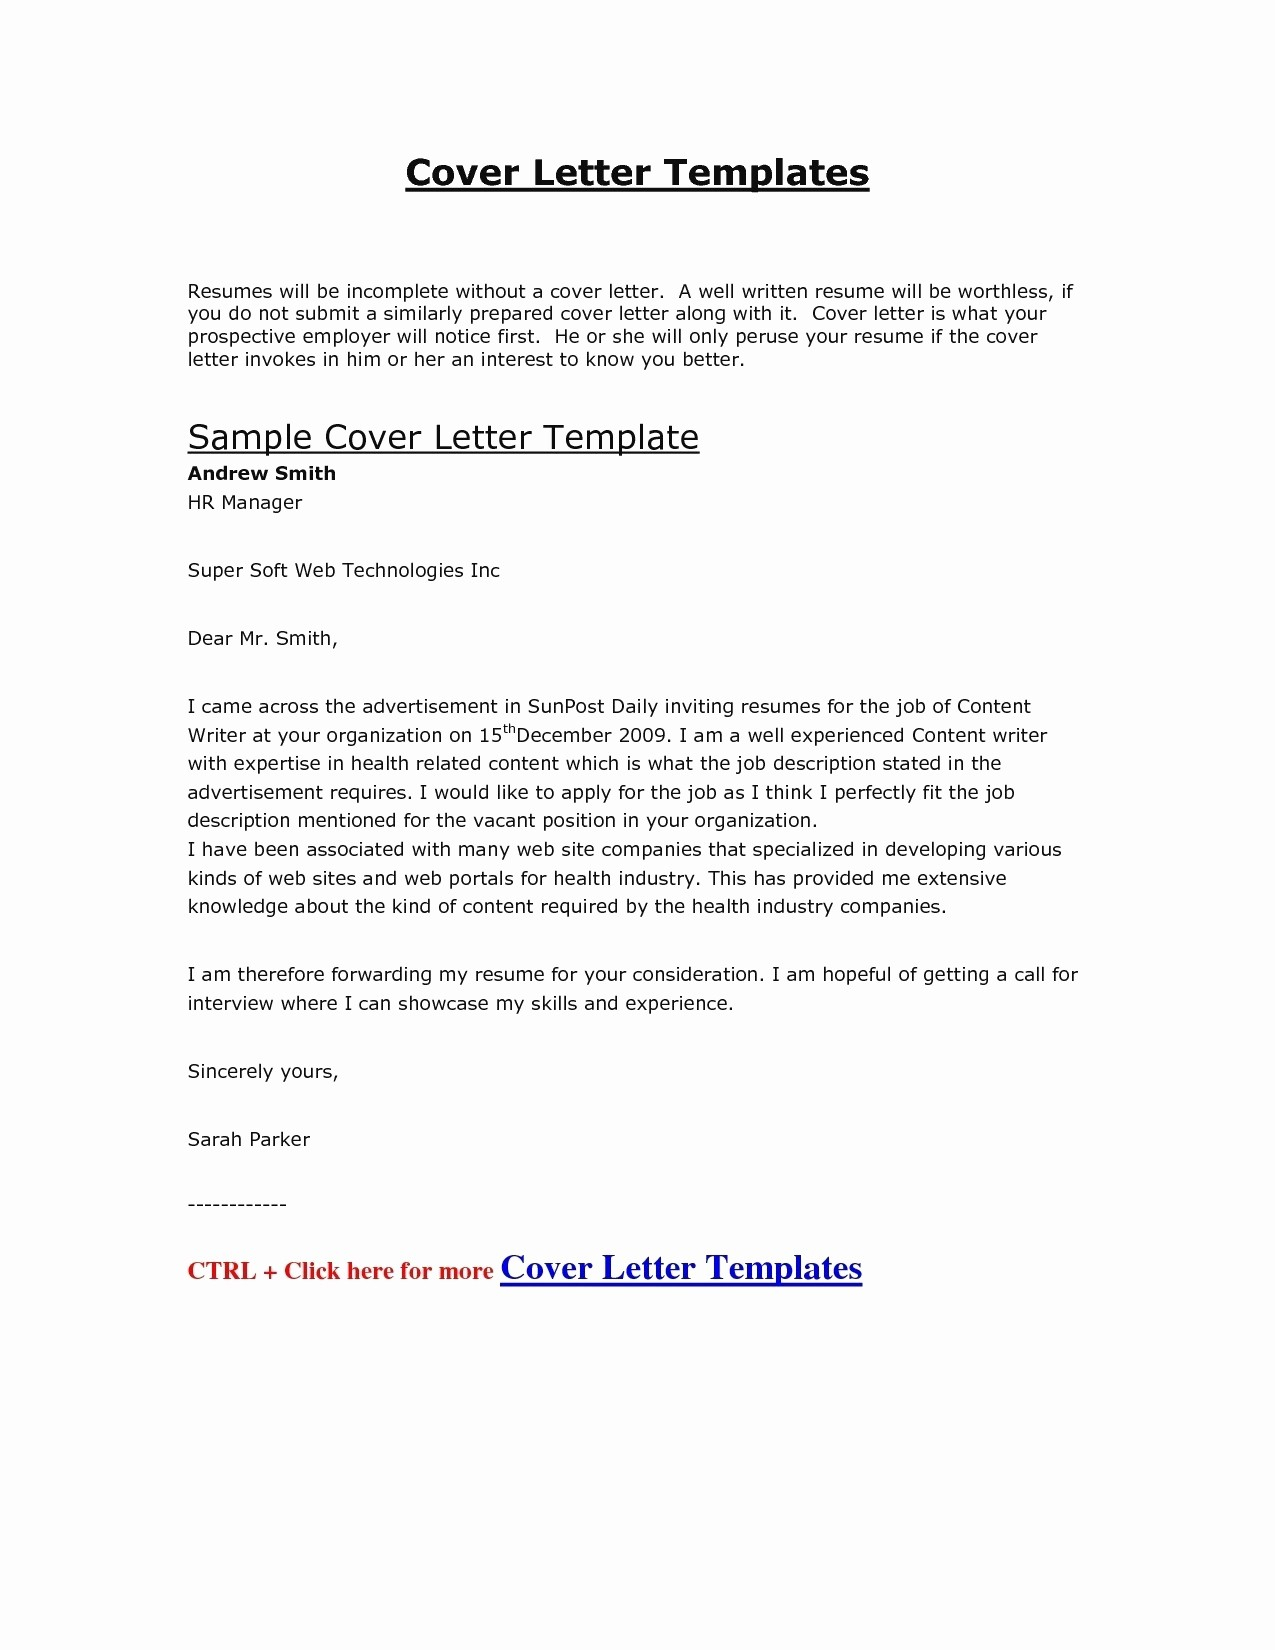 Draft Cover Letter Template - Job Application Letter format Template Copy Cover Letter Template Hr